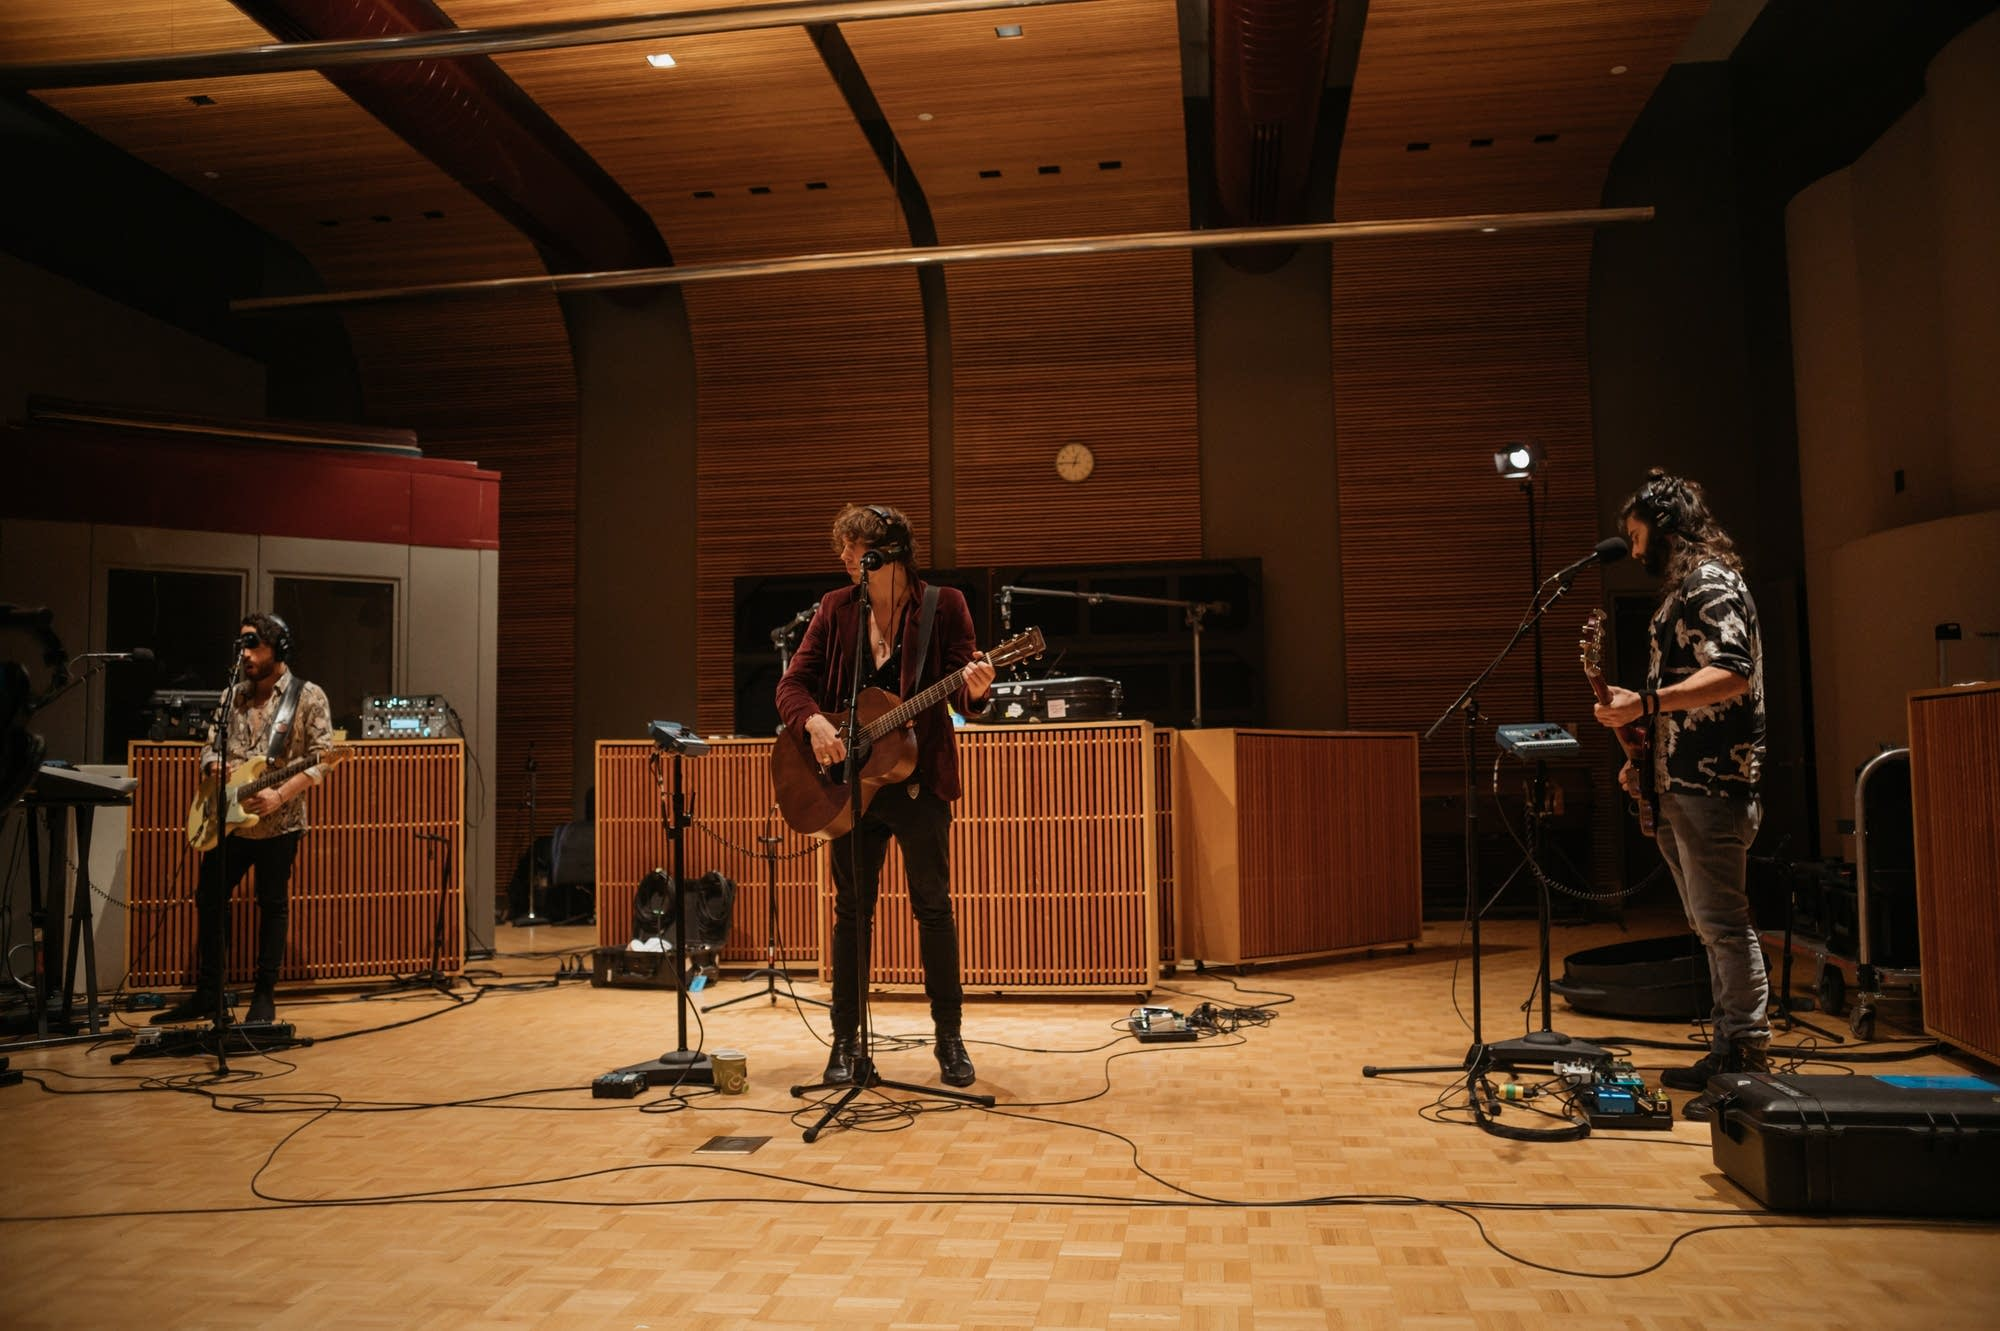 Barns Courtney performs in The Current studio 2019